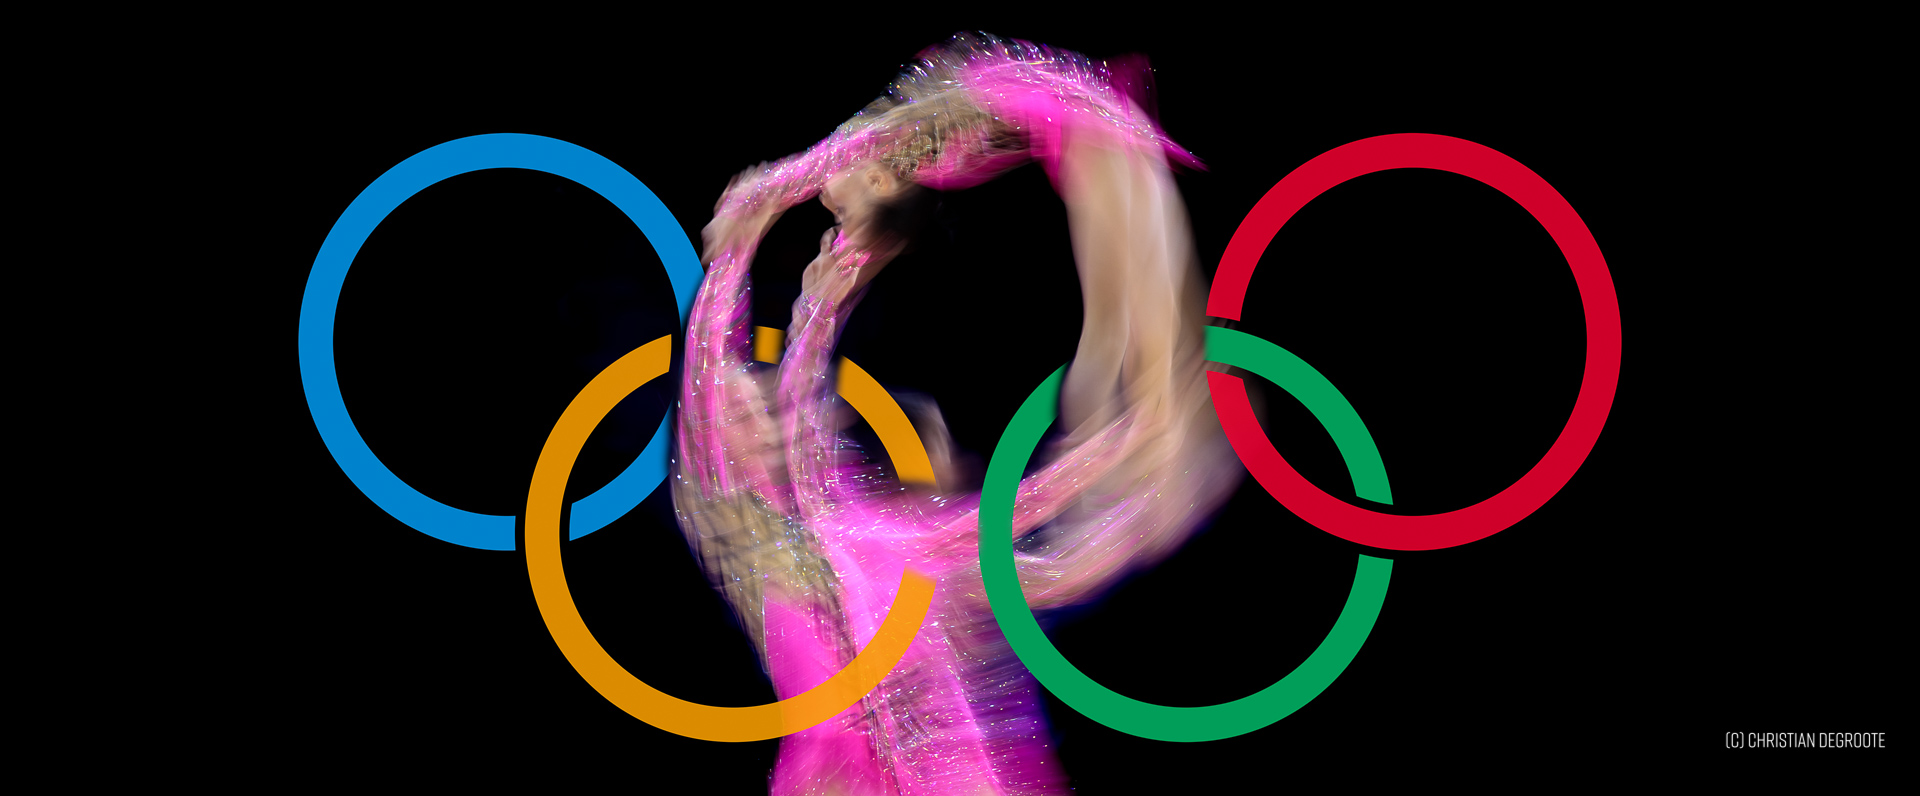 Do you feel that acrobatic gymnastics should be olympic?